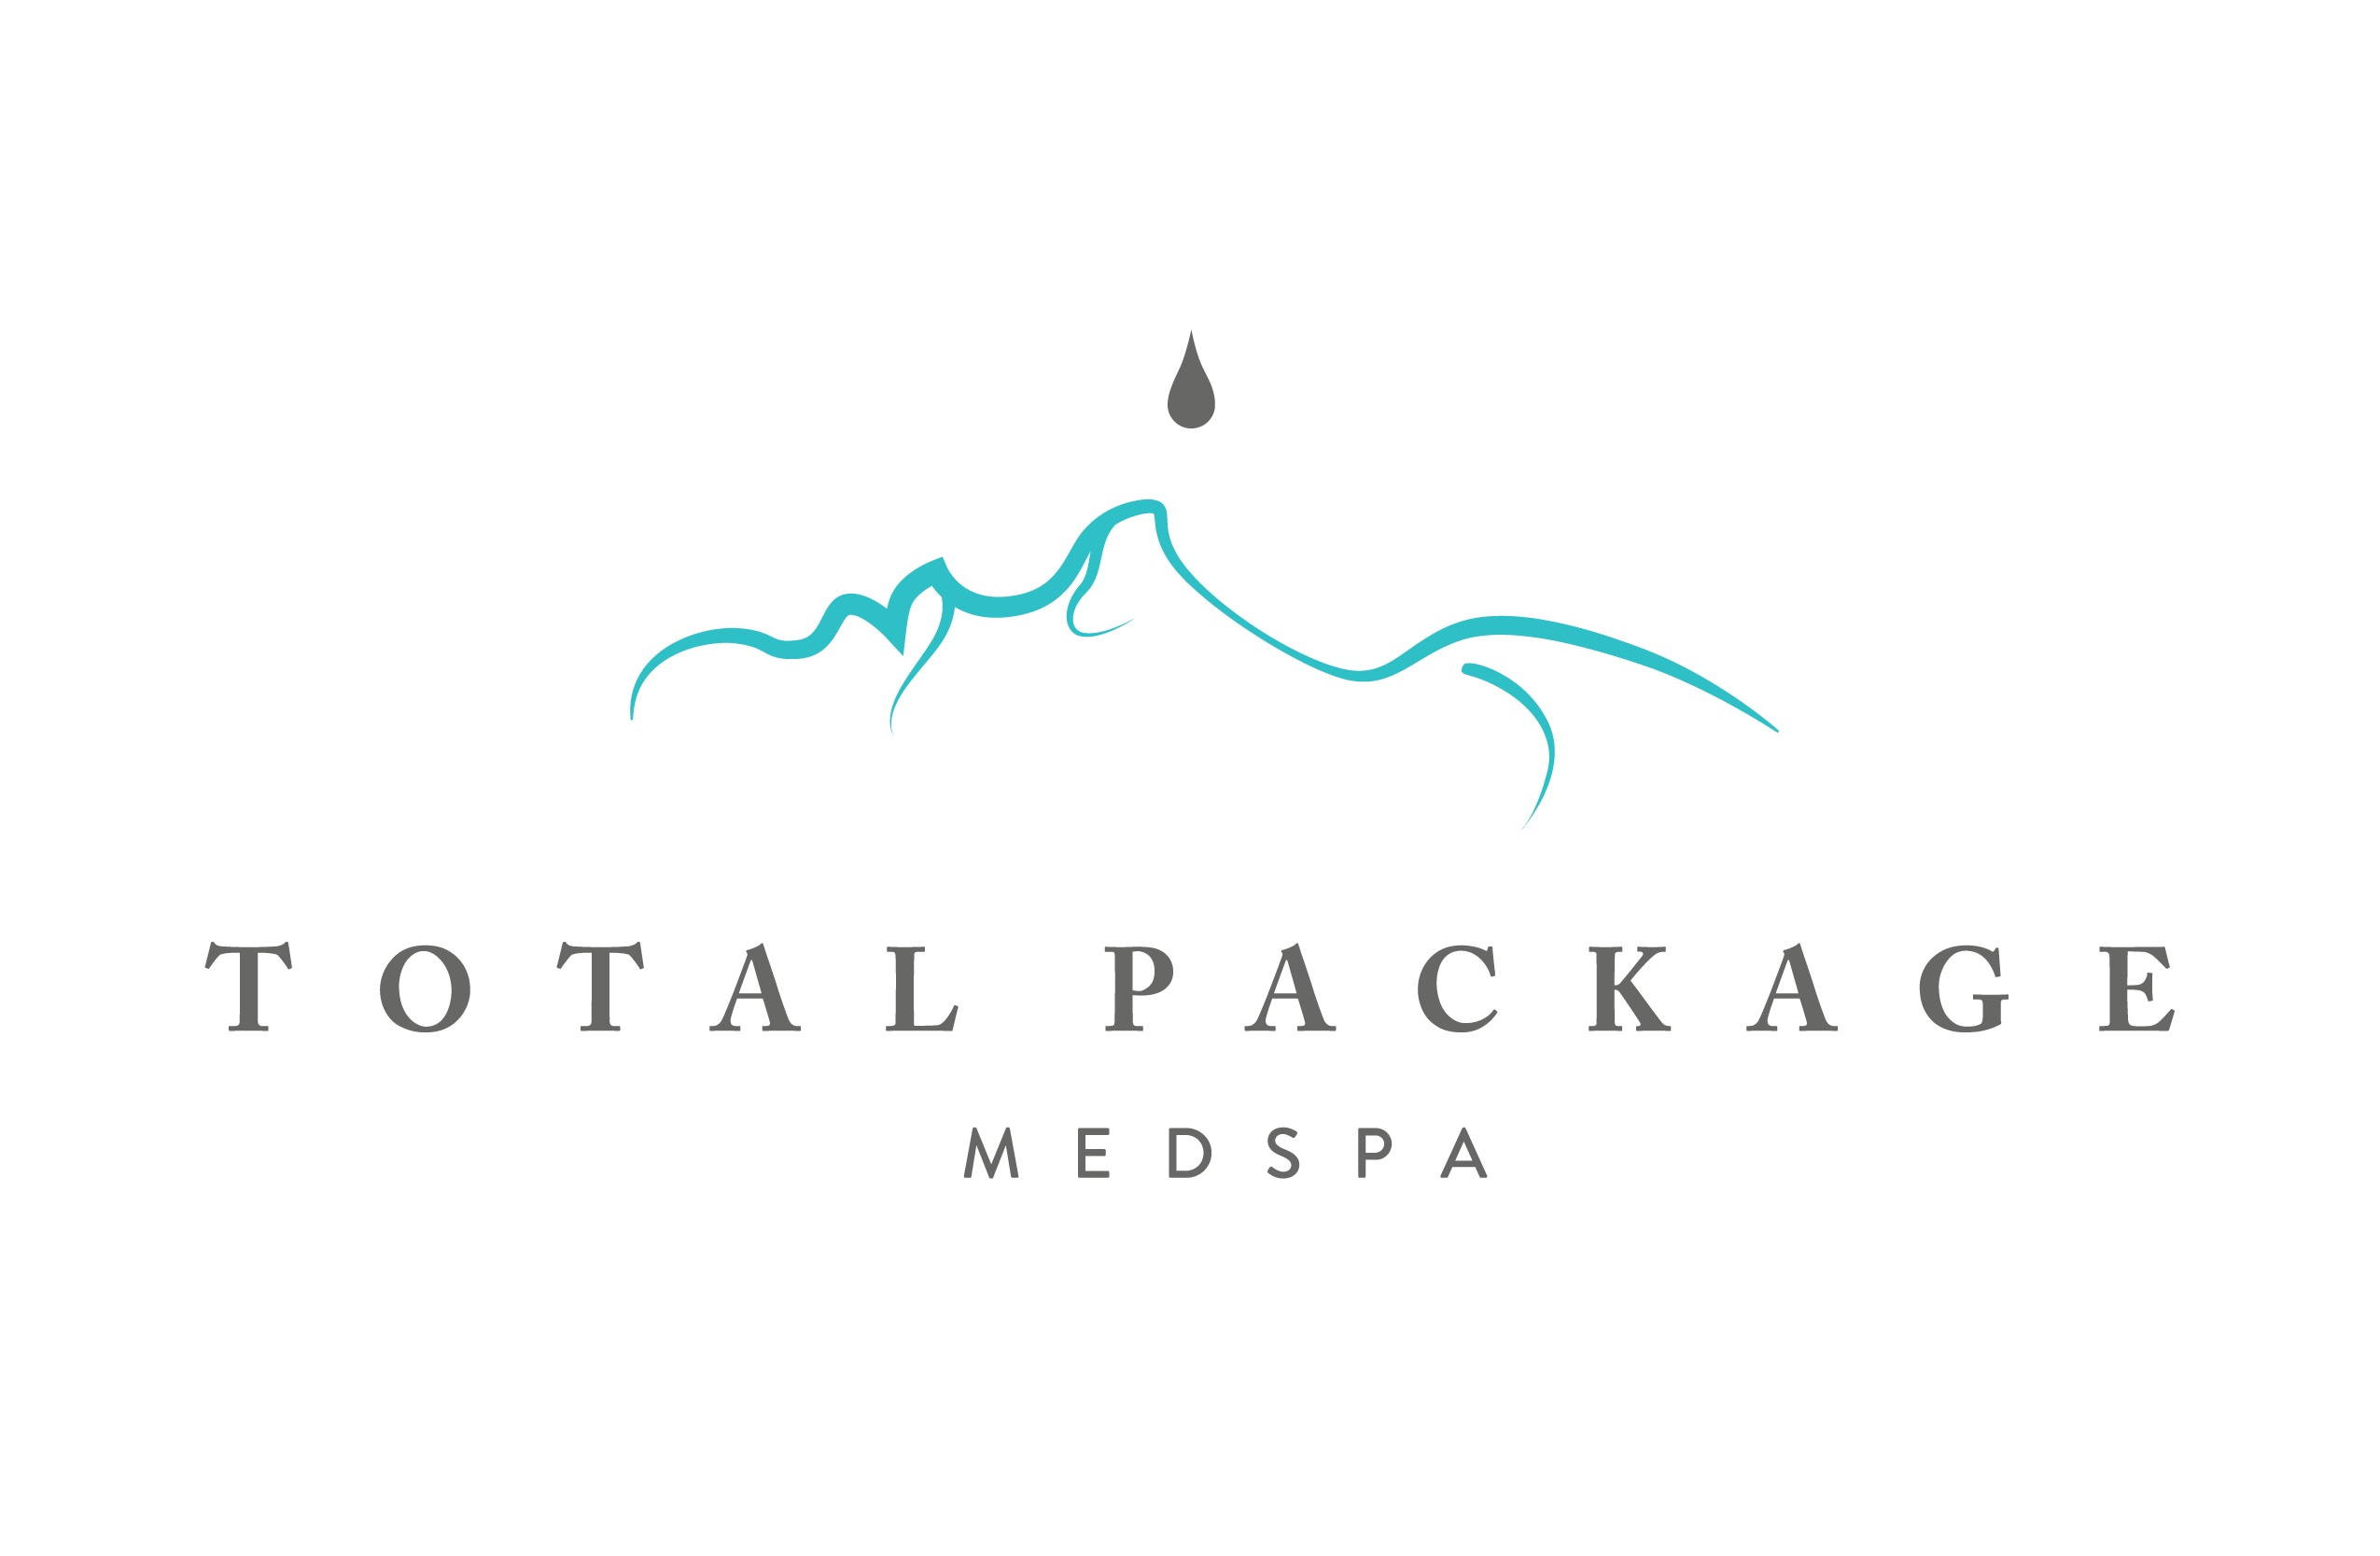 Total Package Med Spa